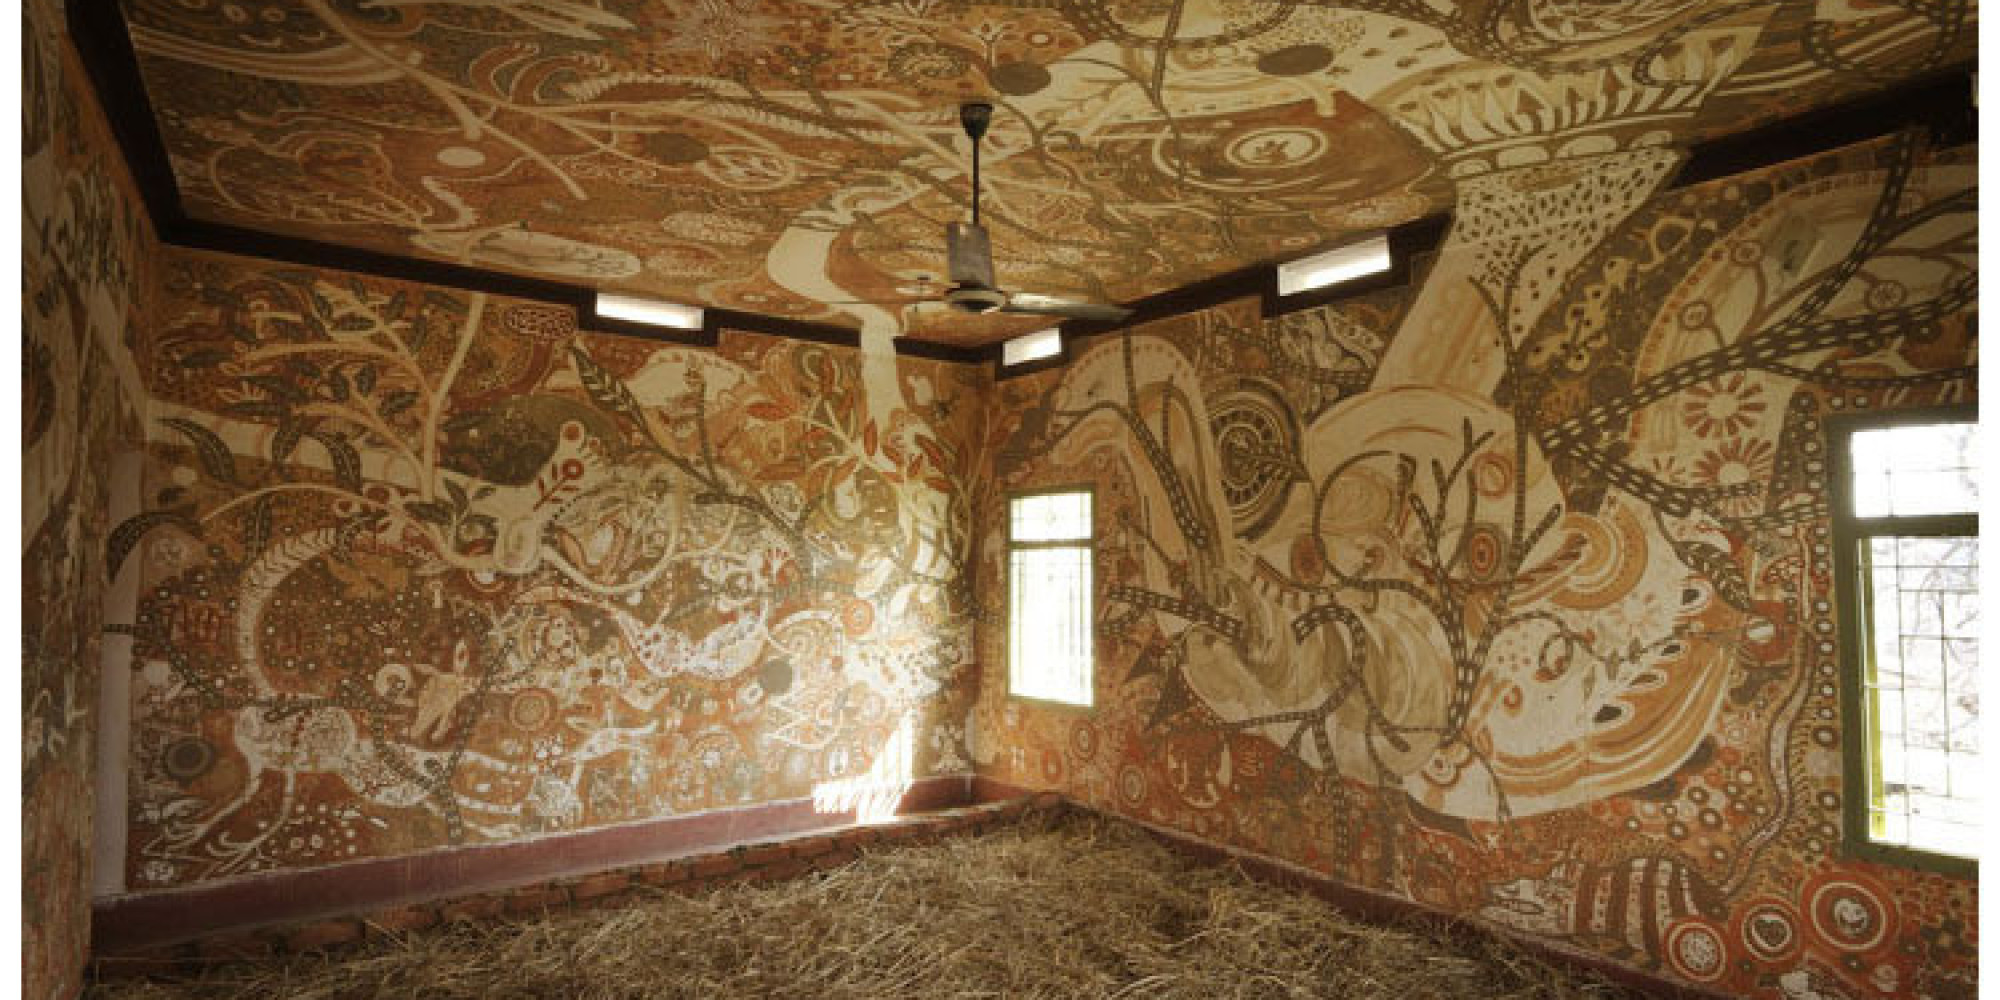 This Sprawling Mud Mural Is Helping Change The Lives Of